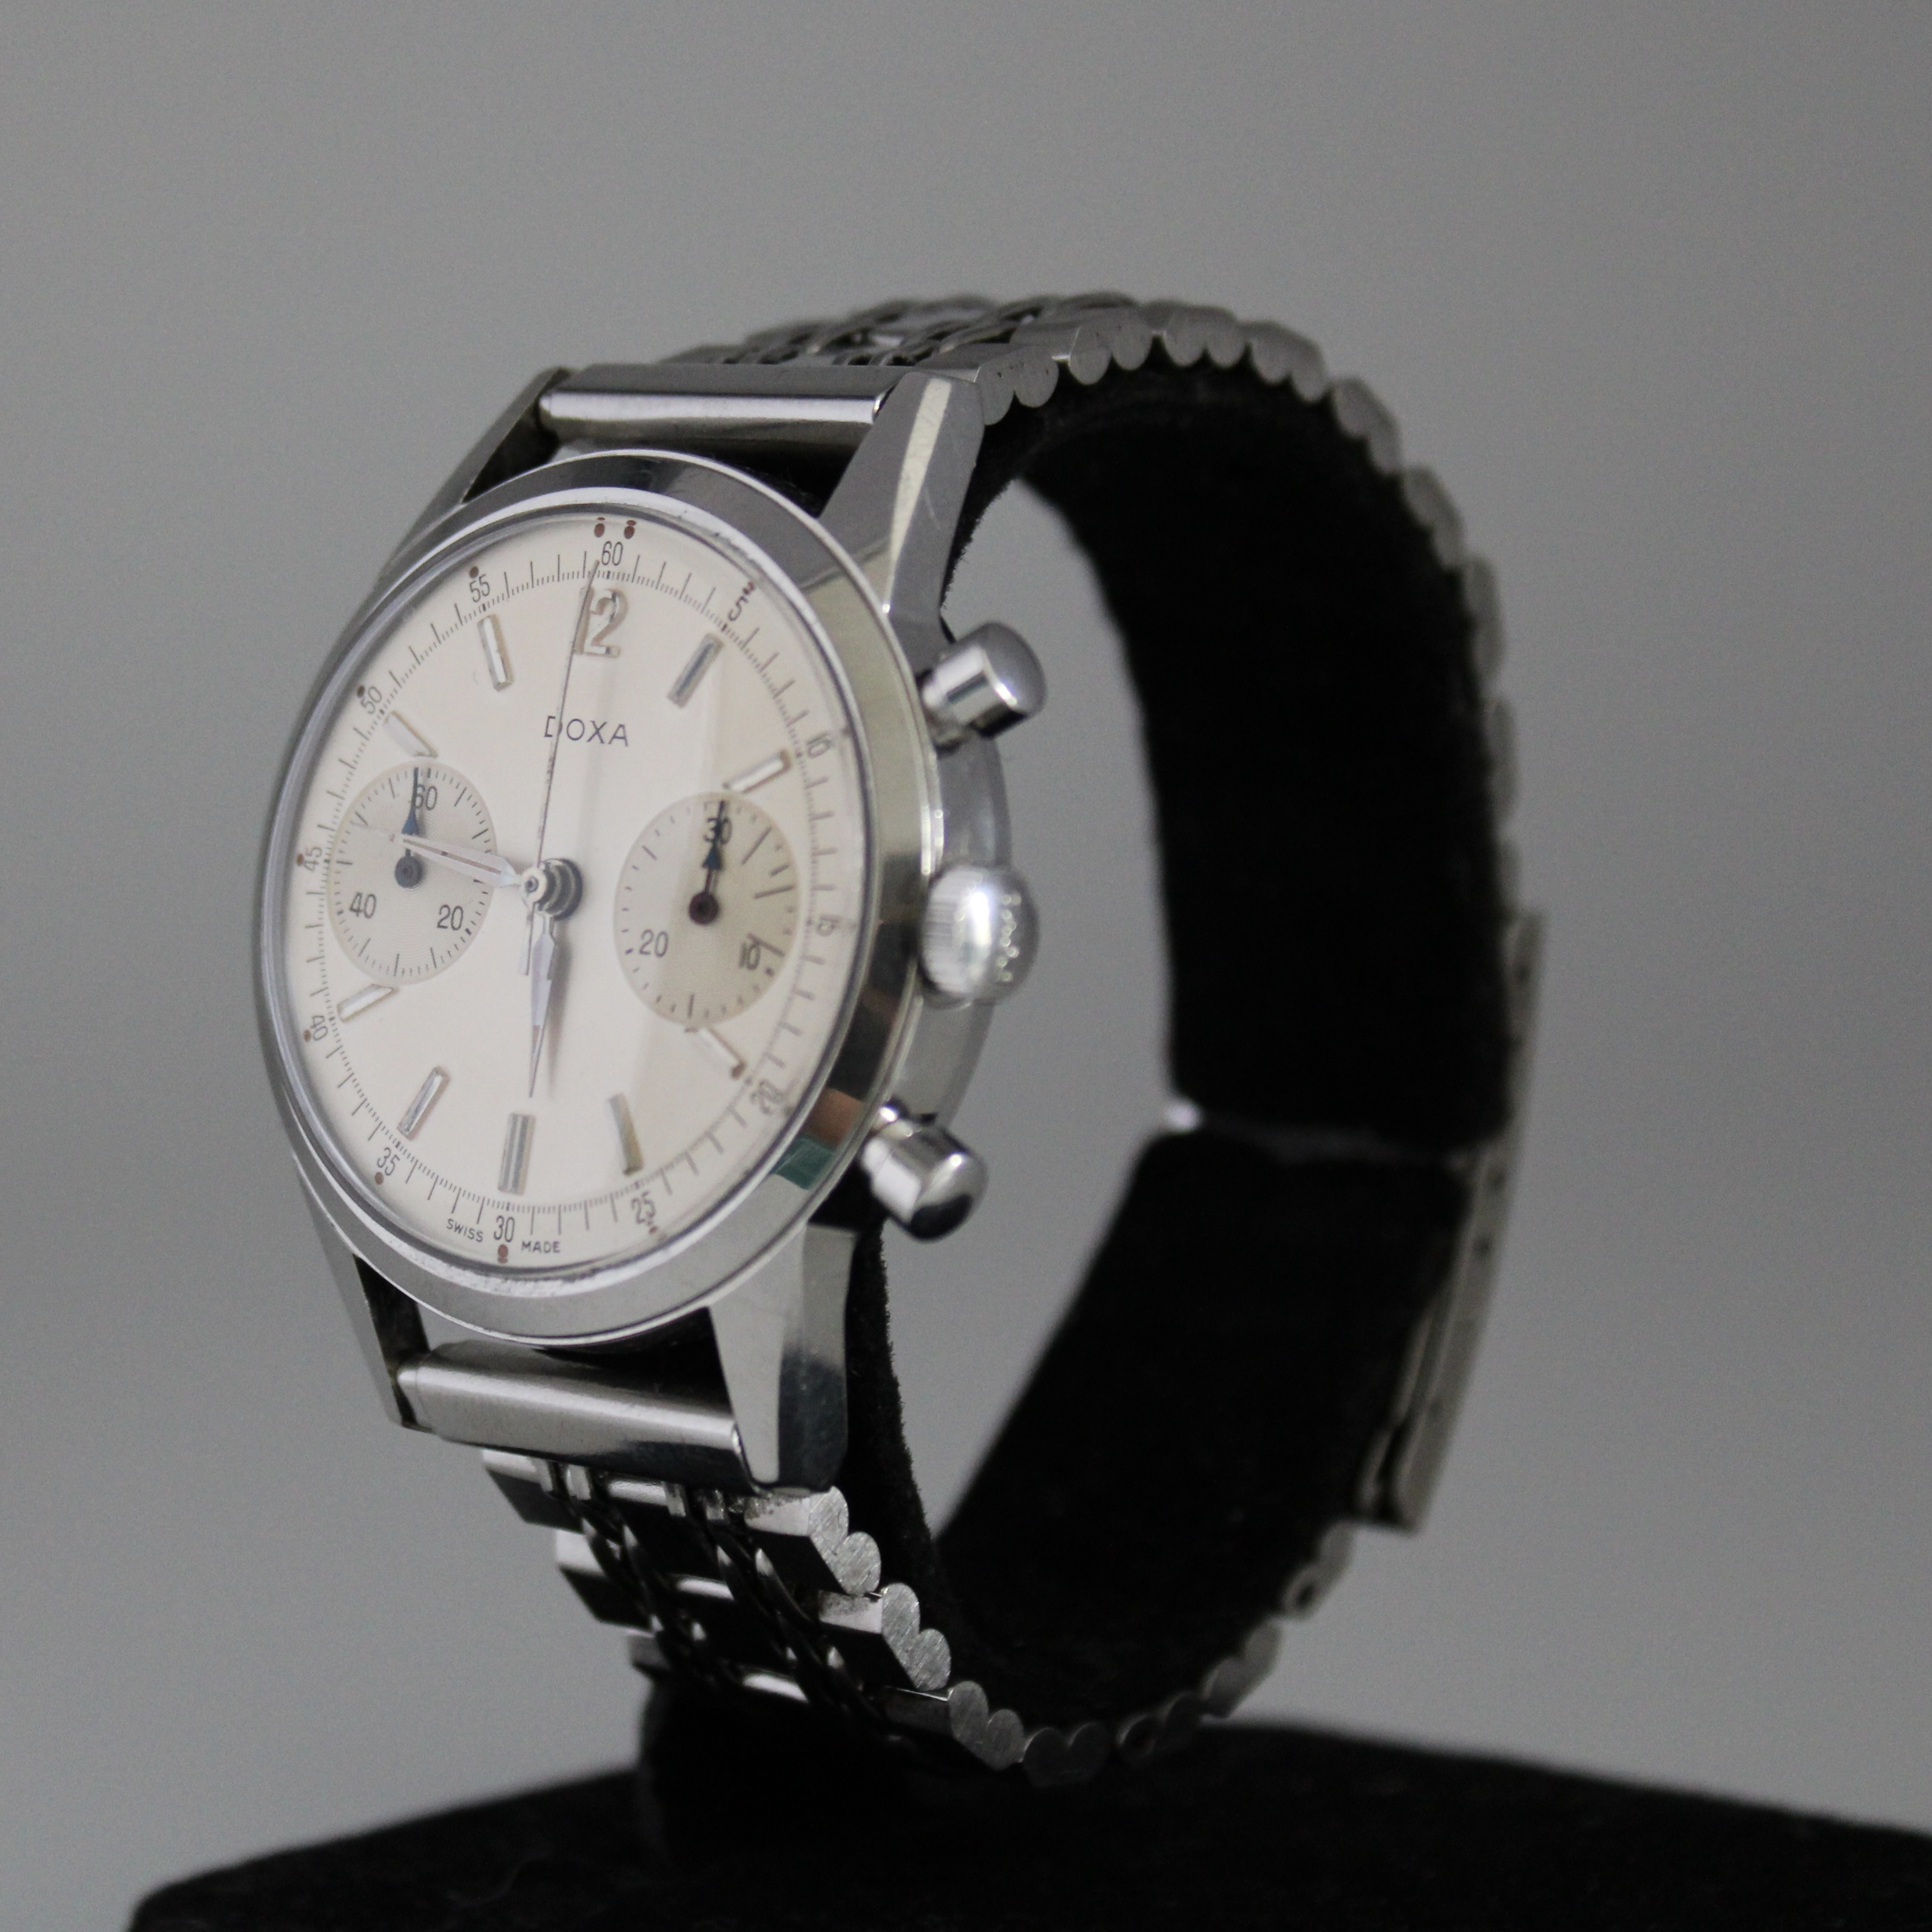 Doxa Vintage Twin Chronograph ref 7105A - Image 2 of 5